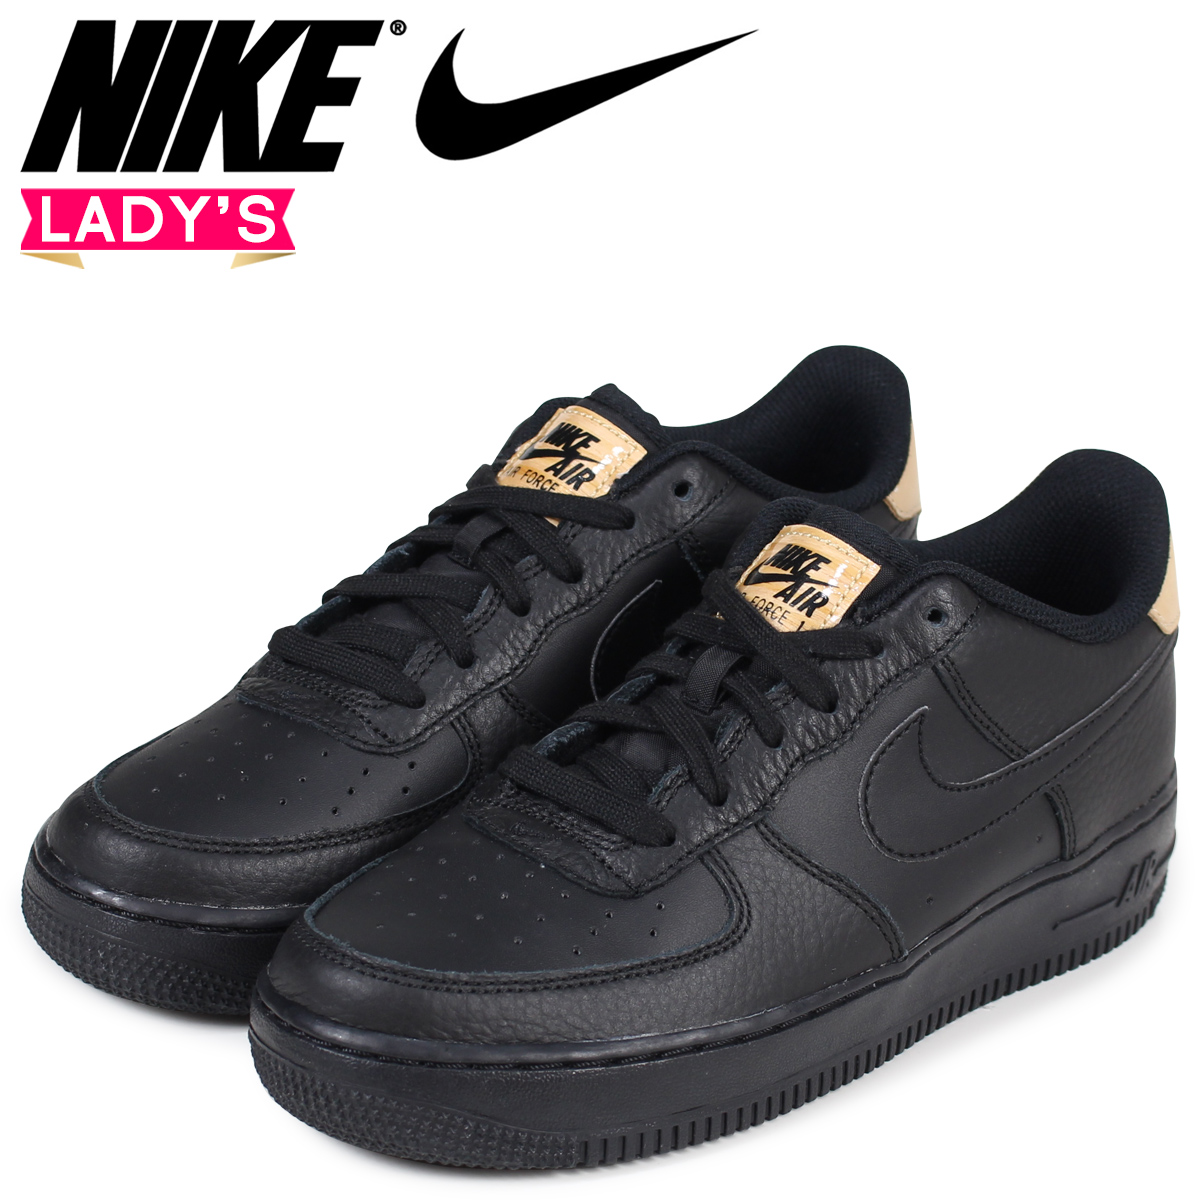 huge discount 16e63 fbbbb NIKE Nike air force 1 LV8 Lady's sneakers AIR FORCE 1 LOW GS 820,438-004  black black